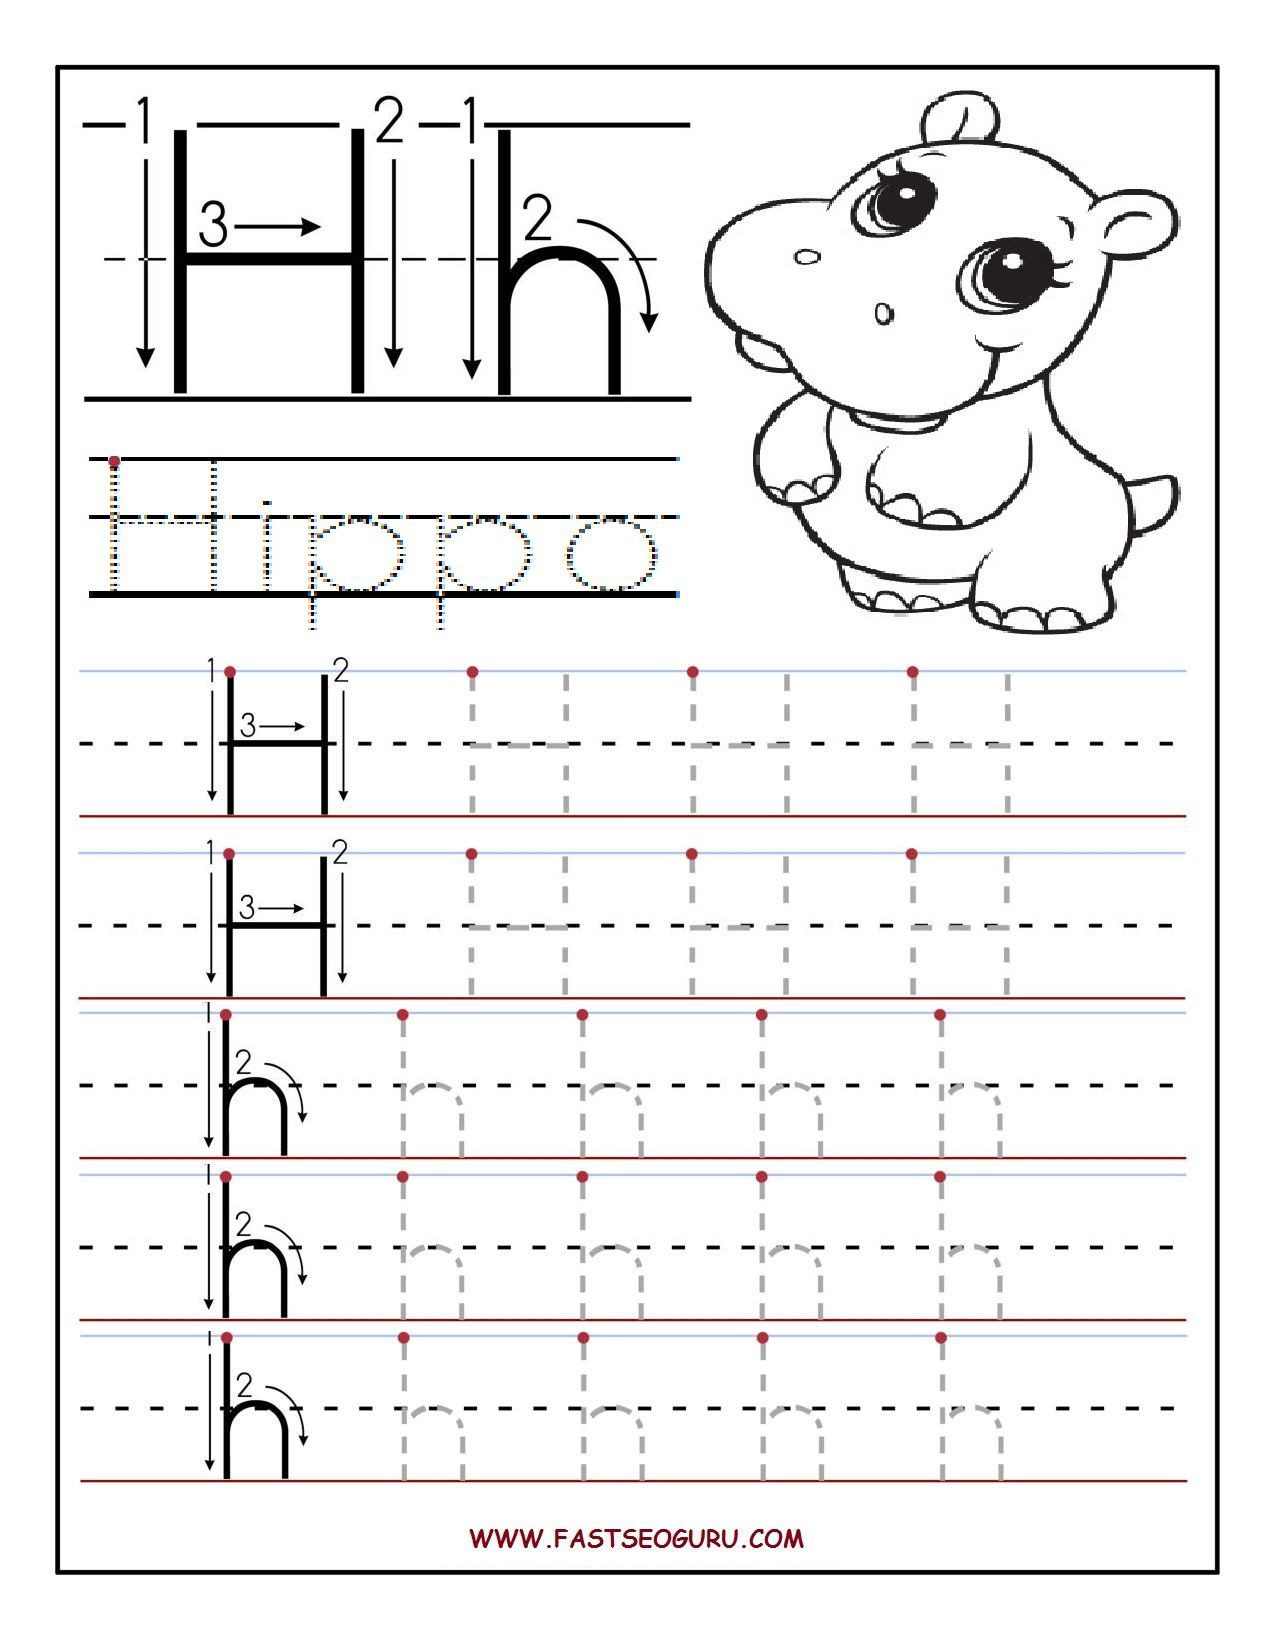 Letter H Worksheets for Preschoolers Printable Letter H Tracing Worksheets for Preschool